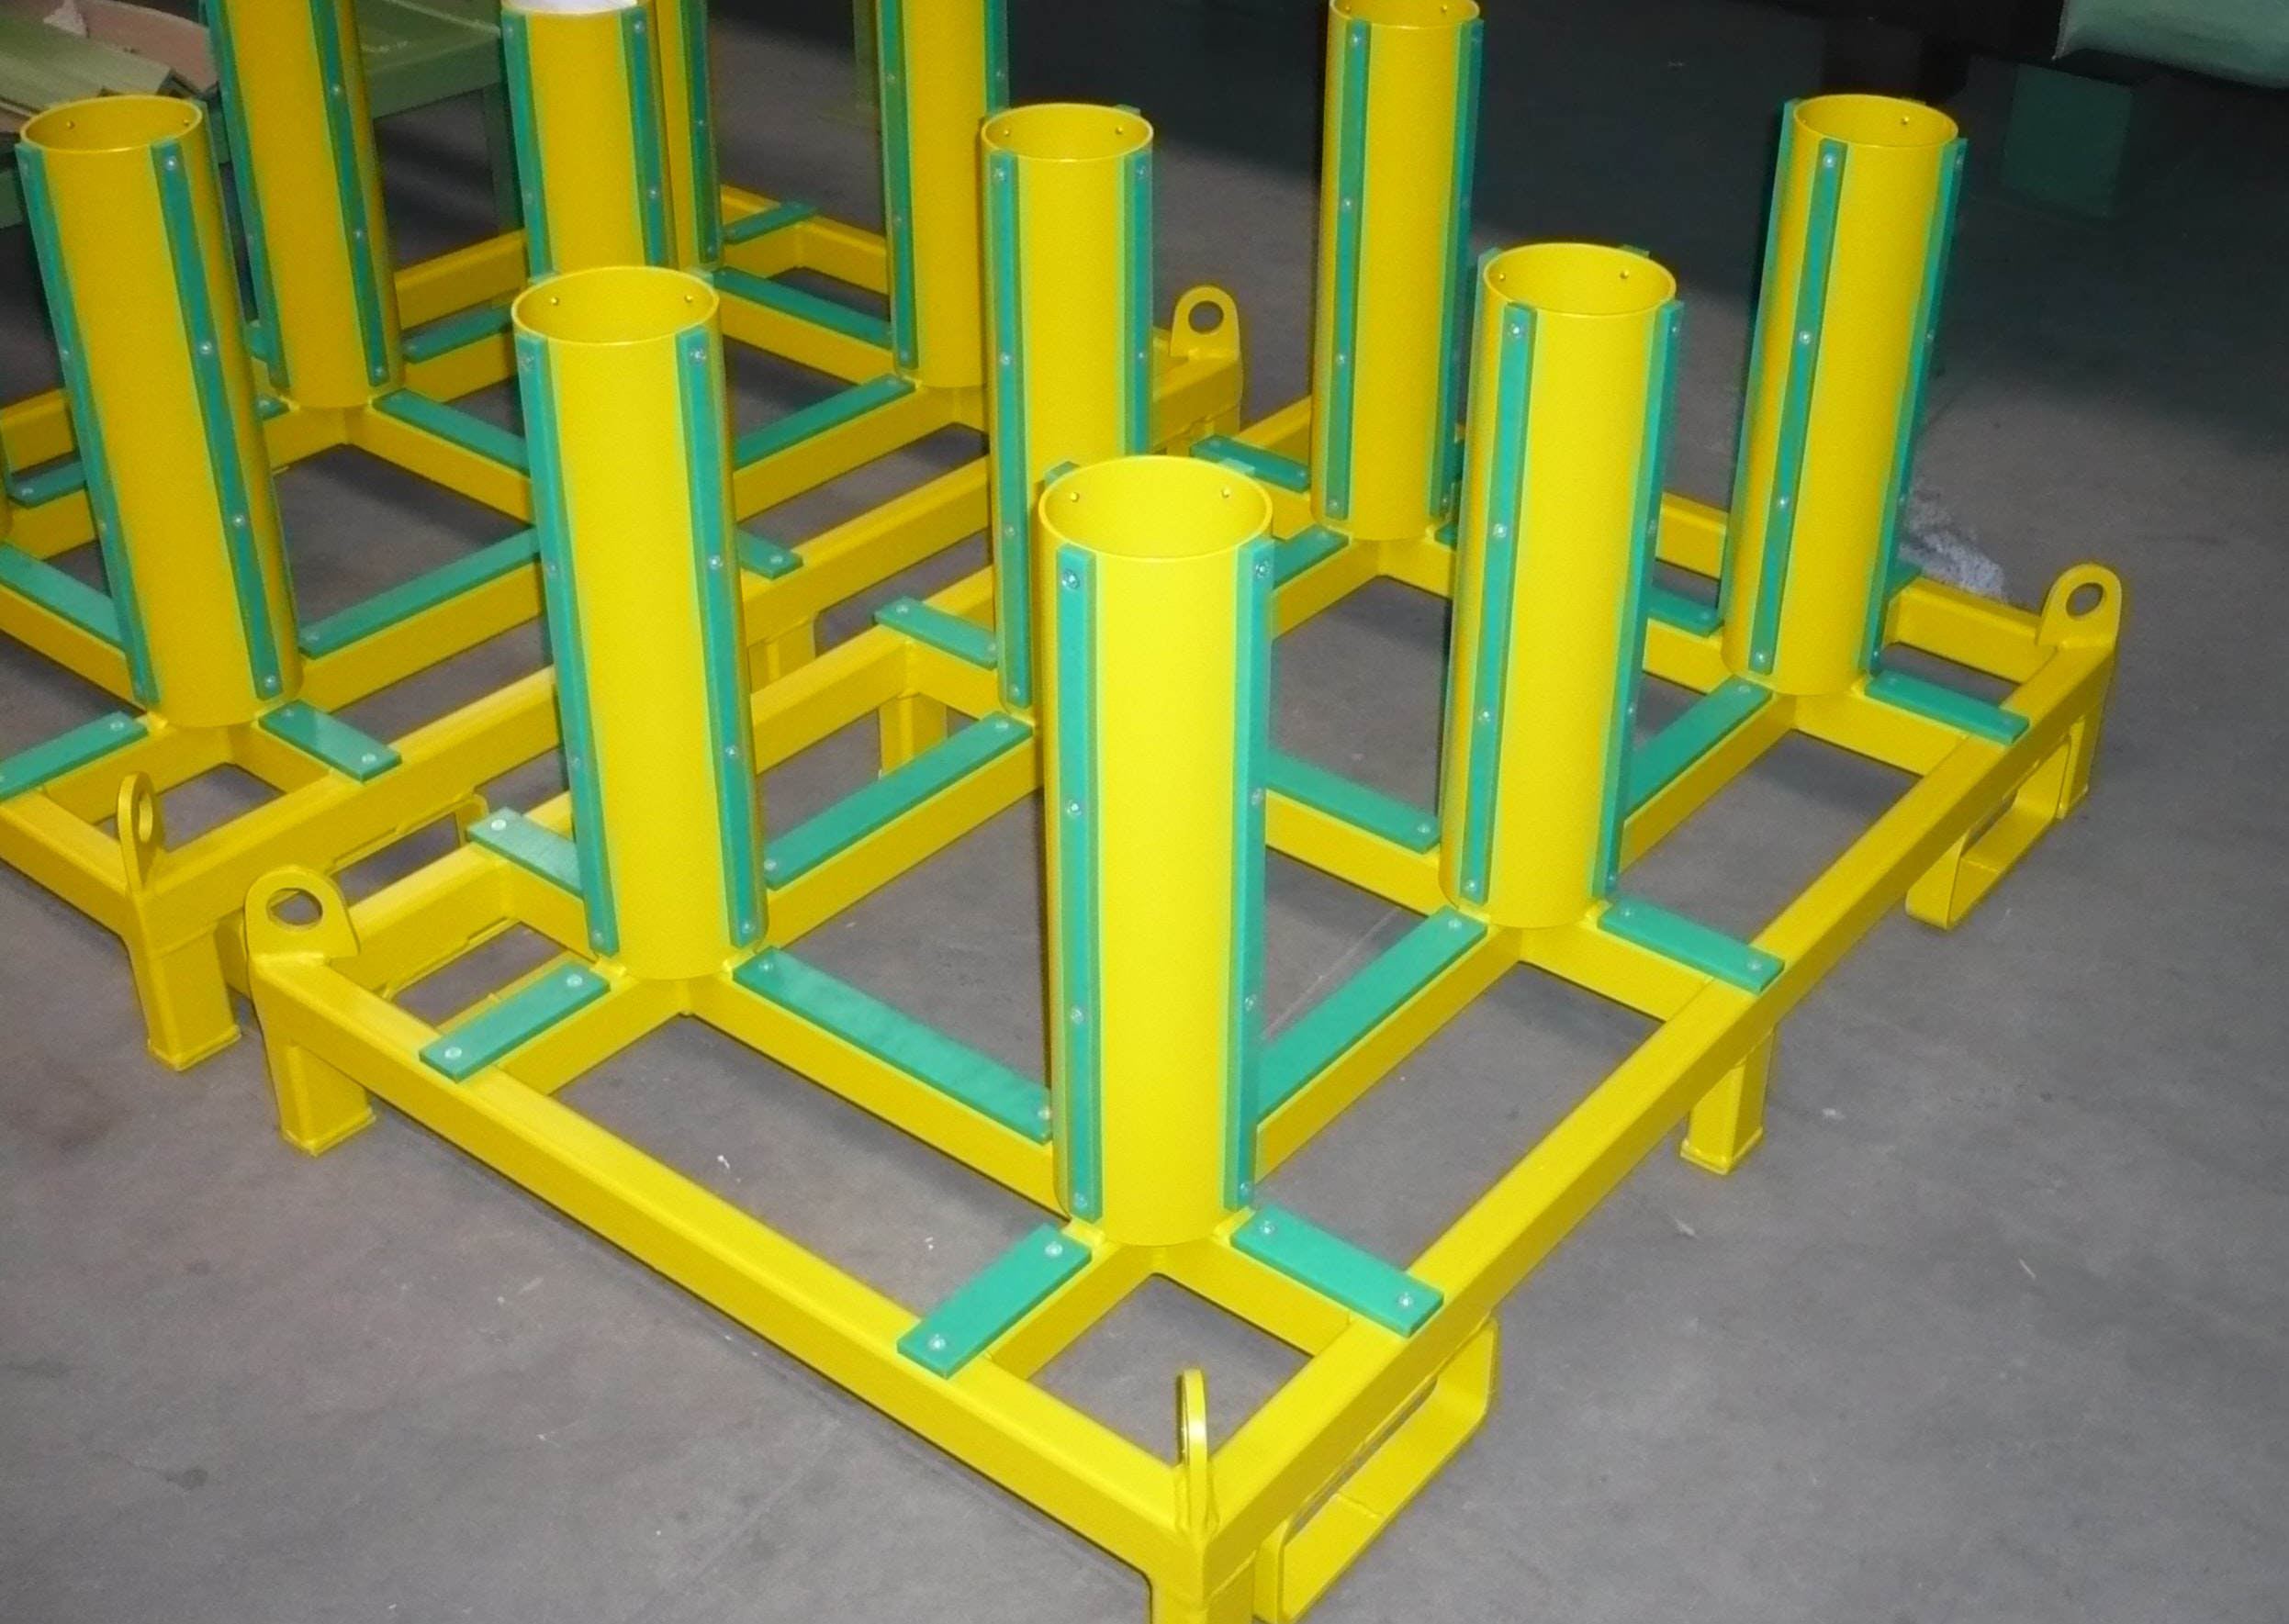 Transport and storage rack for suspension tube roller bearings and components of drive wheelsets